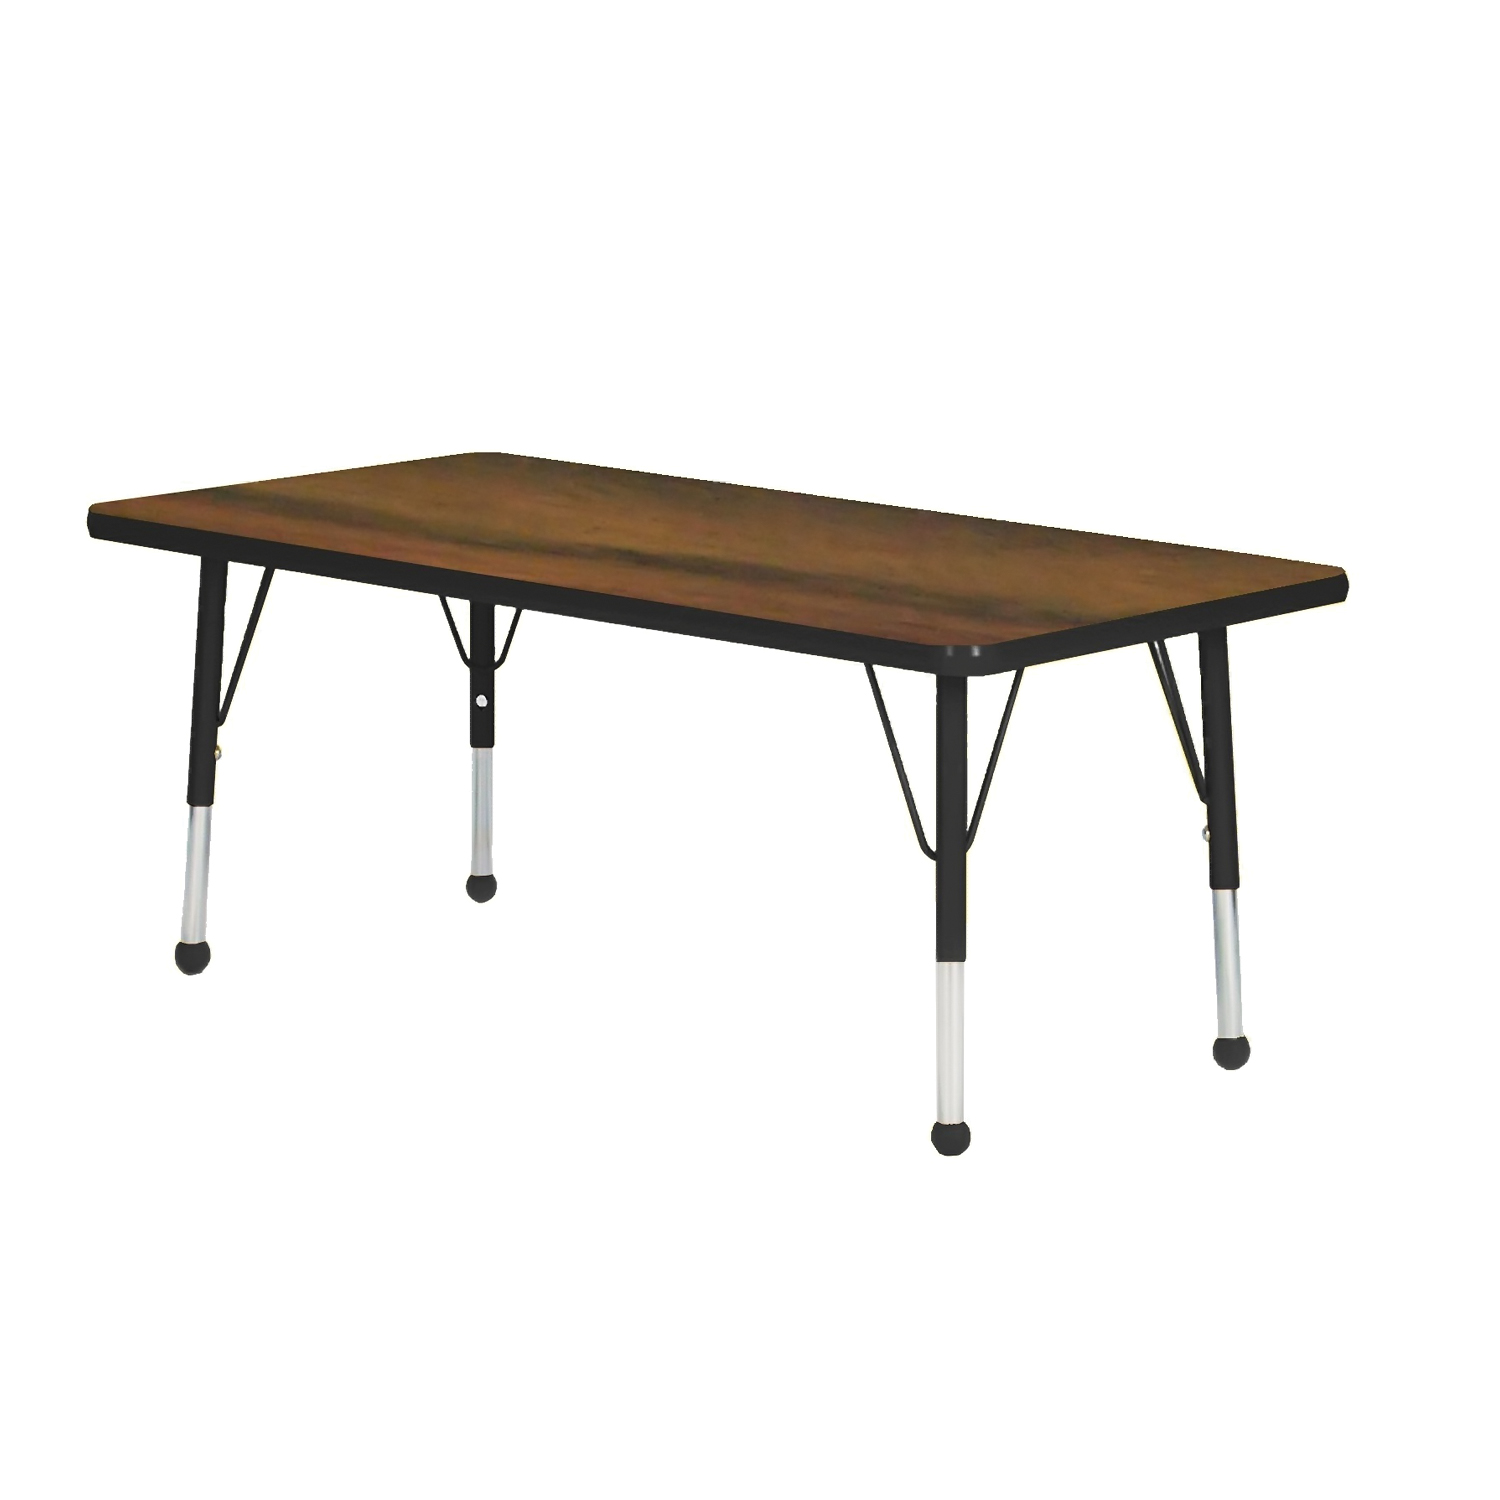 """Mahar 30"""" x 60"""" Rectangle Table Top Color: Walnut Edge Color: Tan Leg Height: Toddler 16""""-24"""" Glide Style: Self-leveling nickel at Sears.com"""